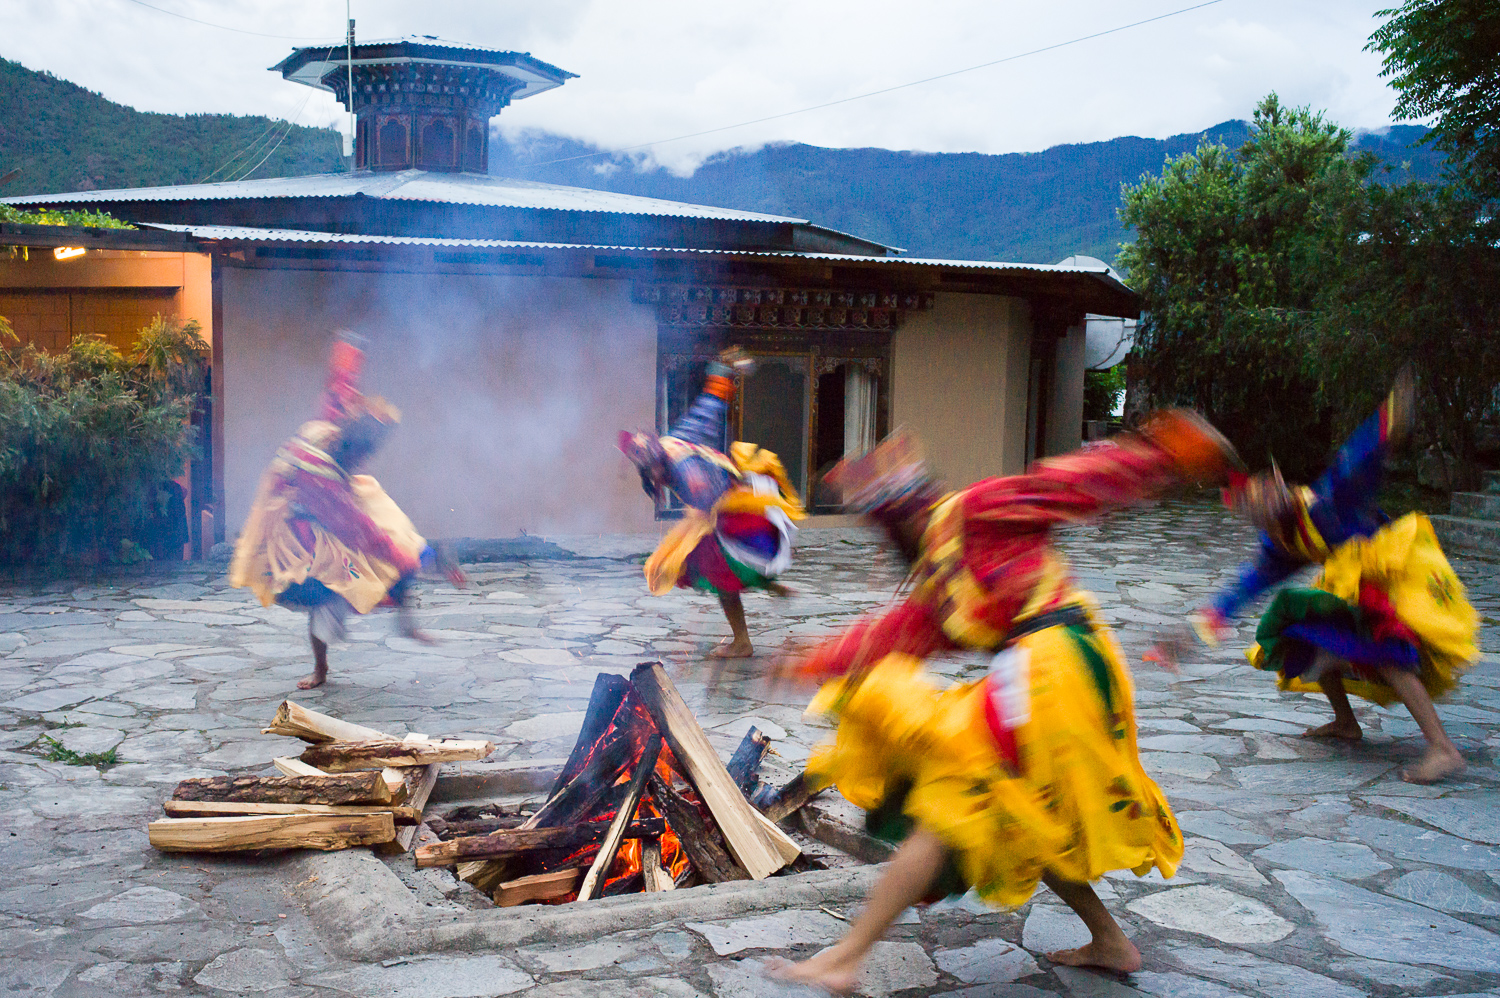 Another cultural performance where participants dance around the bonfire, Paro